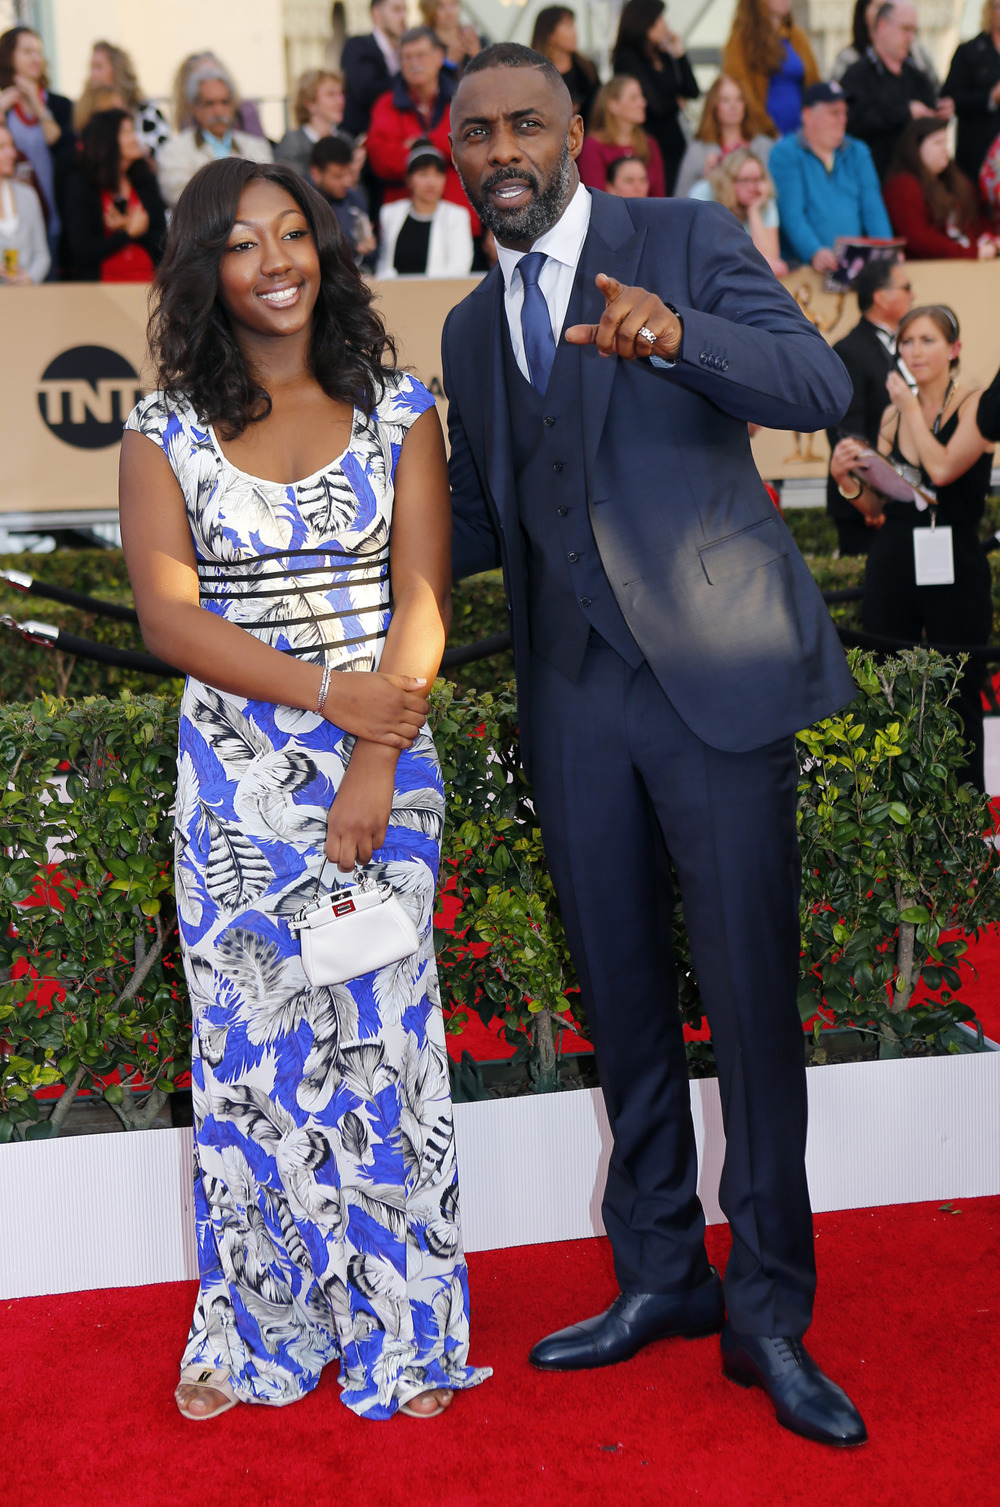 Father & Daughter moment at the 22nd annual SAG Awards 2016. Nails for ISan Elba.